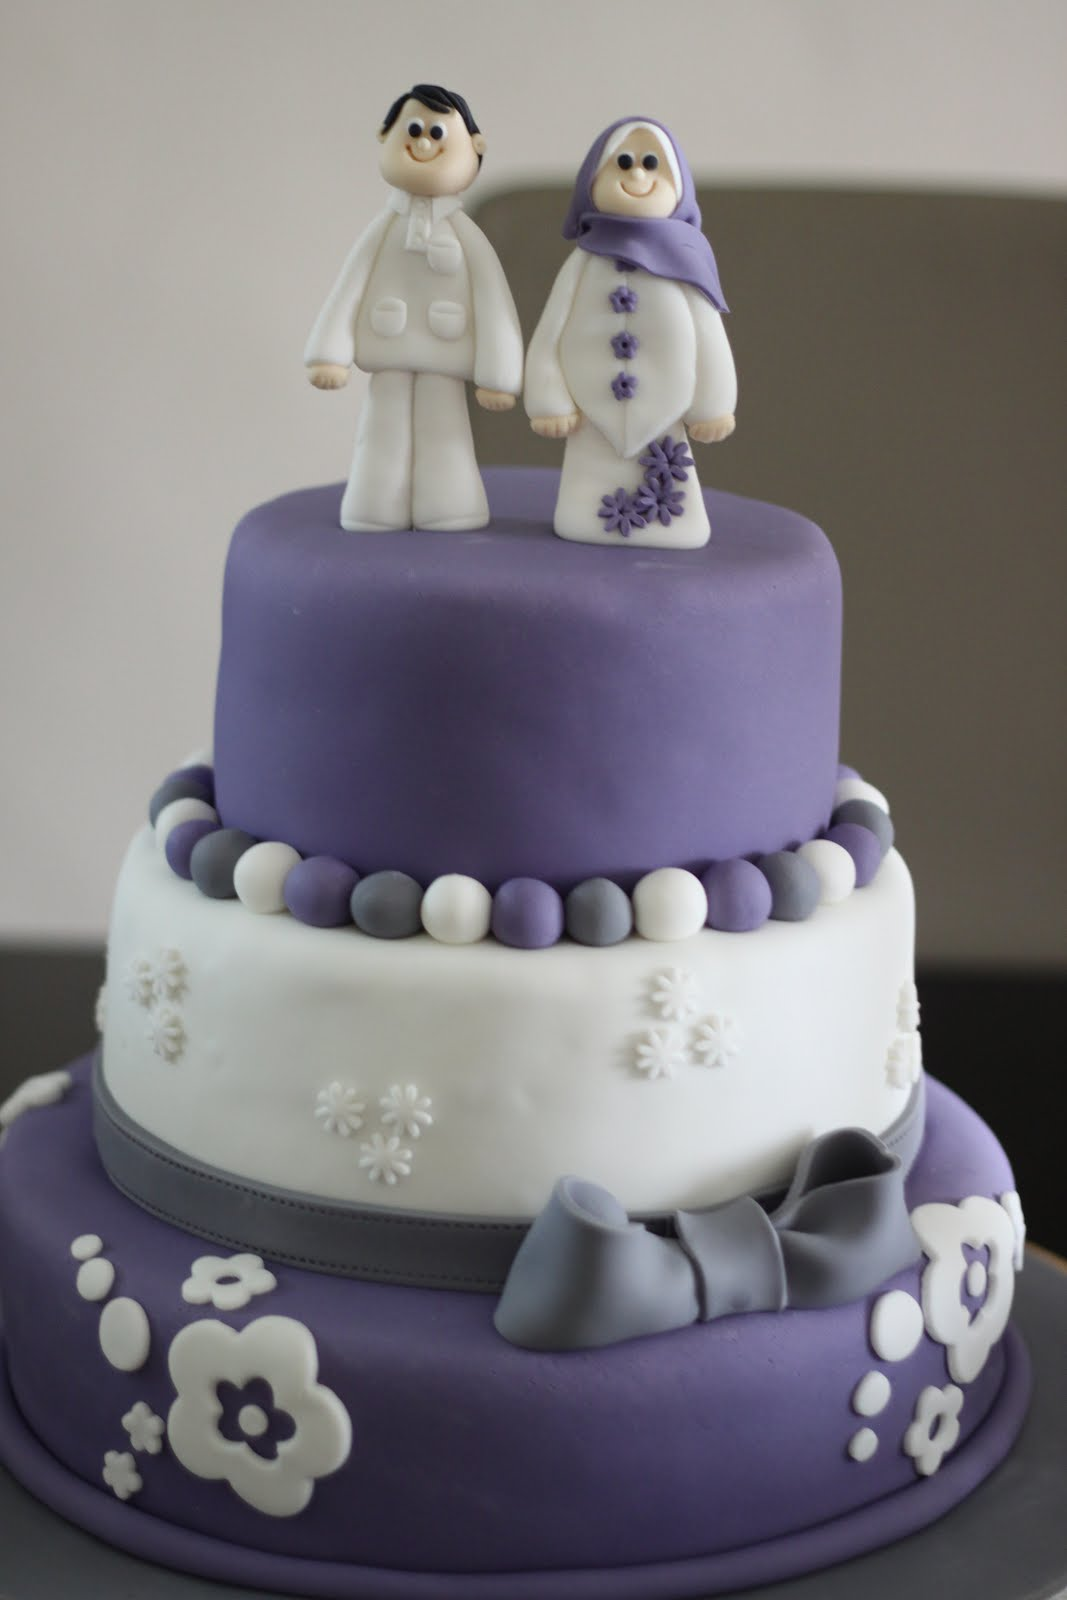 CoMeLiCiOuS 3 tier Purple wedding cake